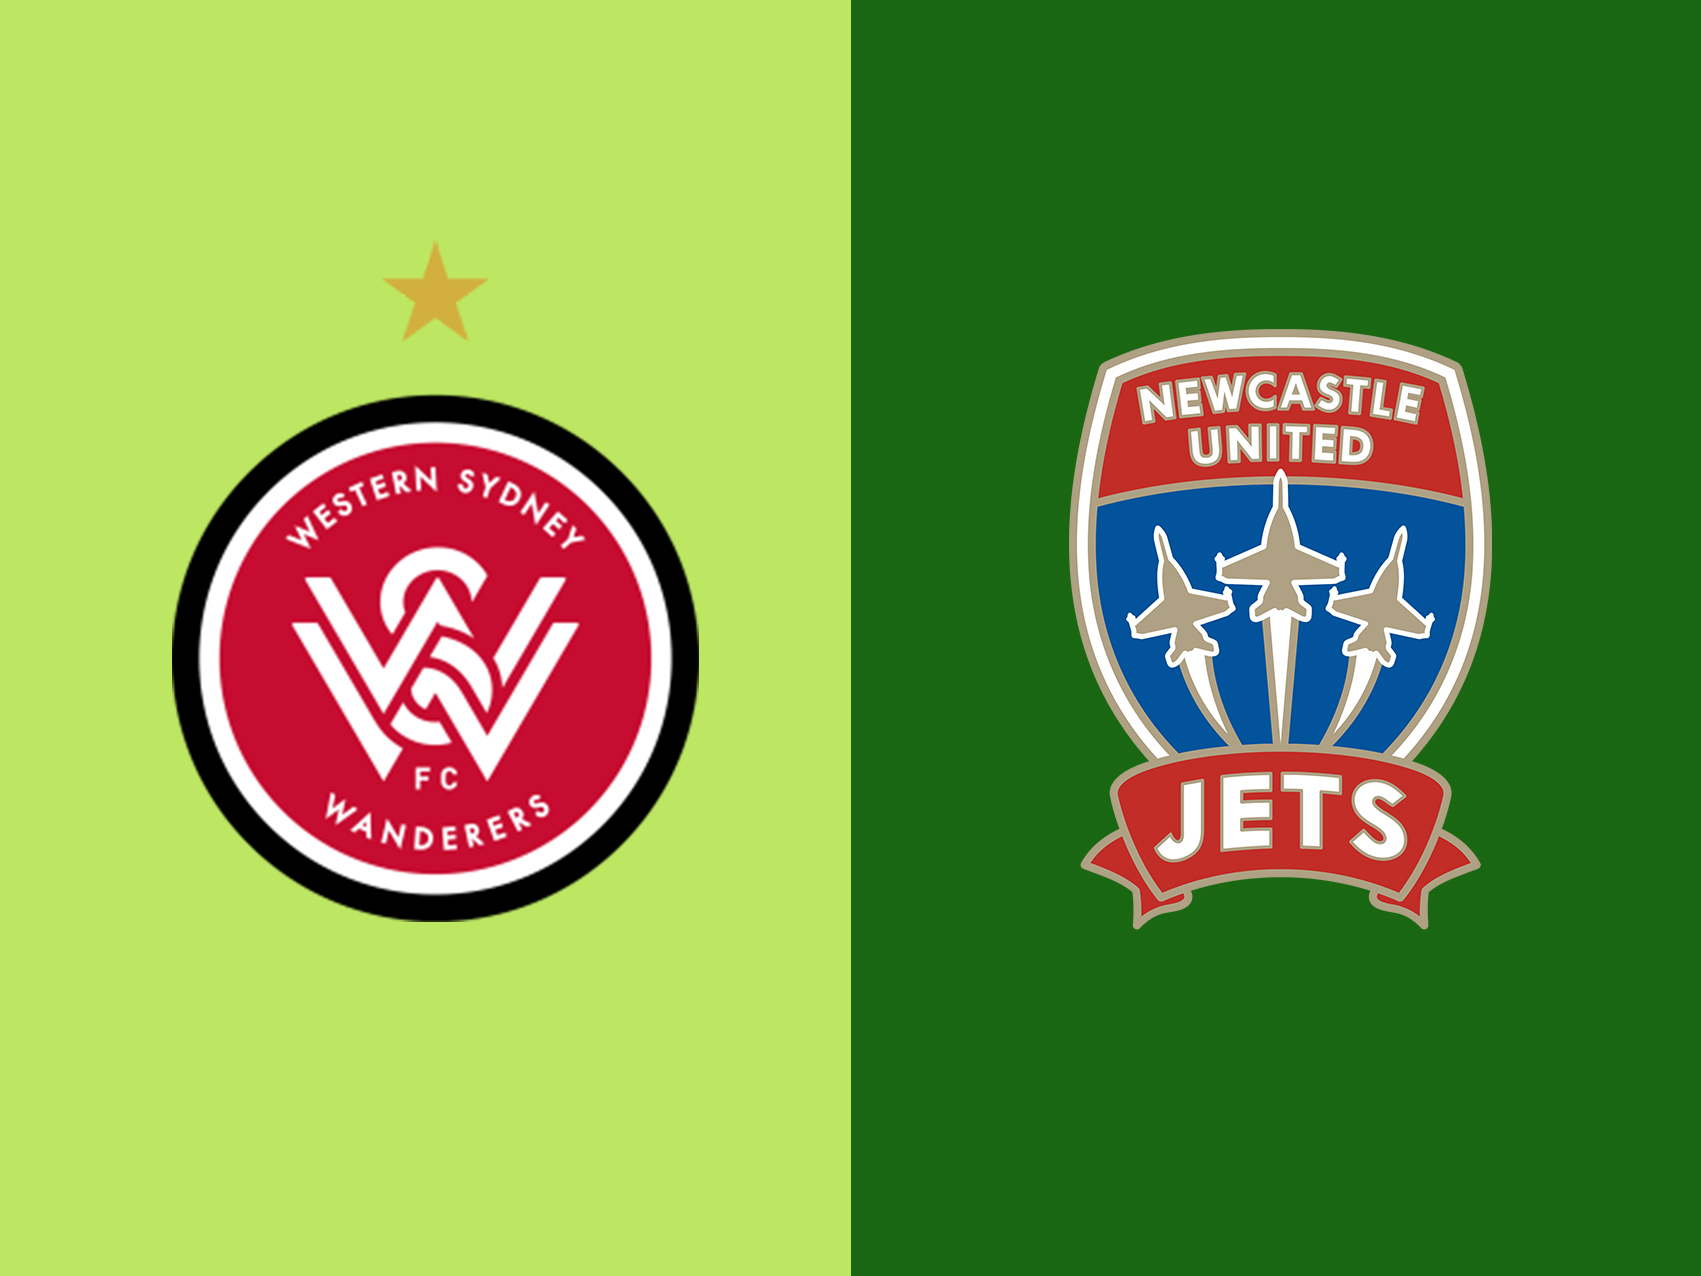 ws-wanderers-vs-newcastle-jets-–-tip-bong-da-1-2-2019 1